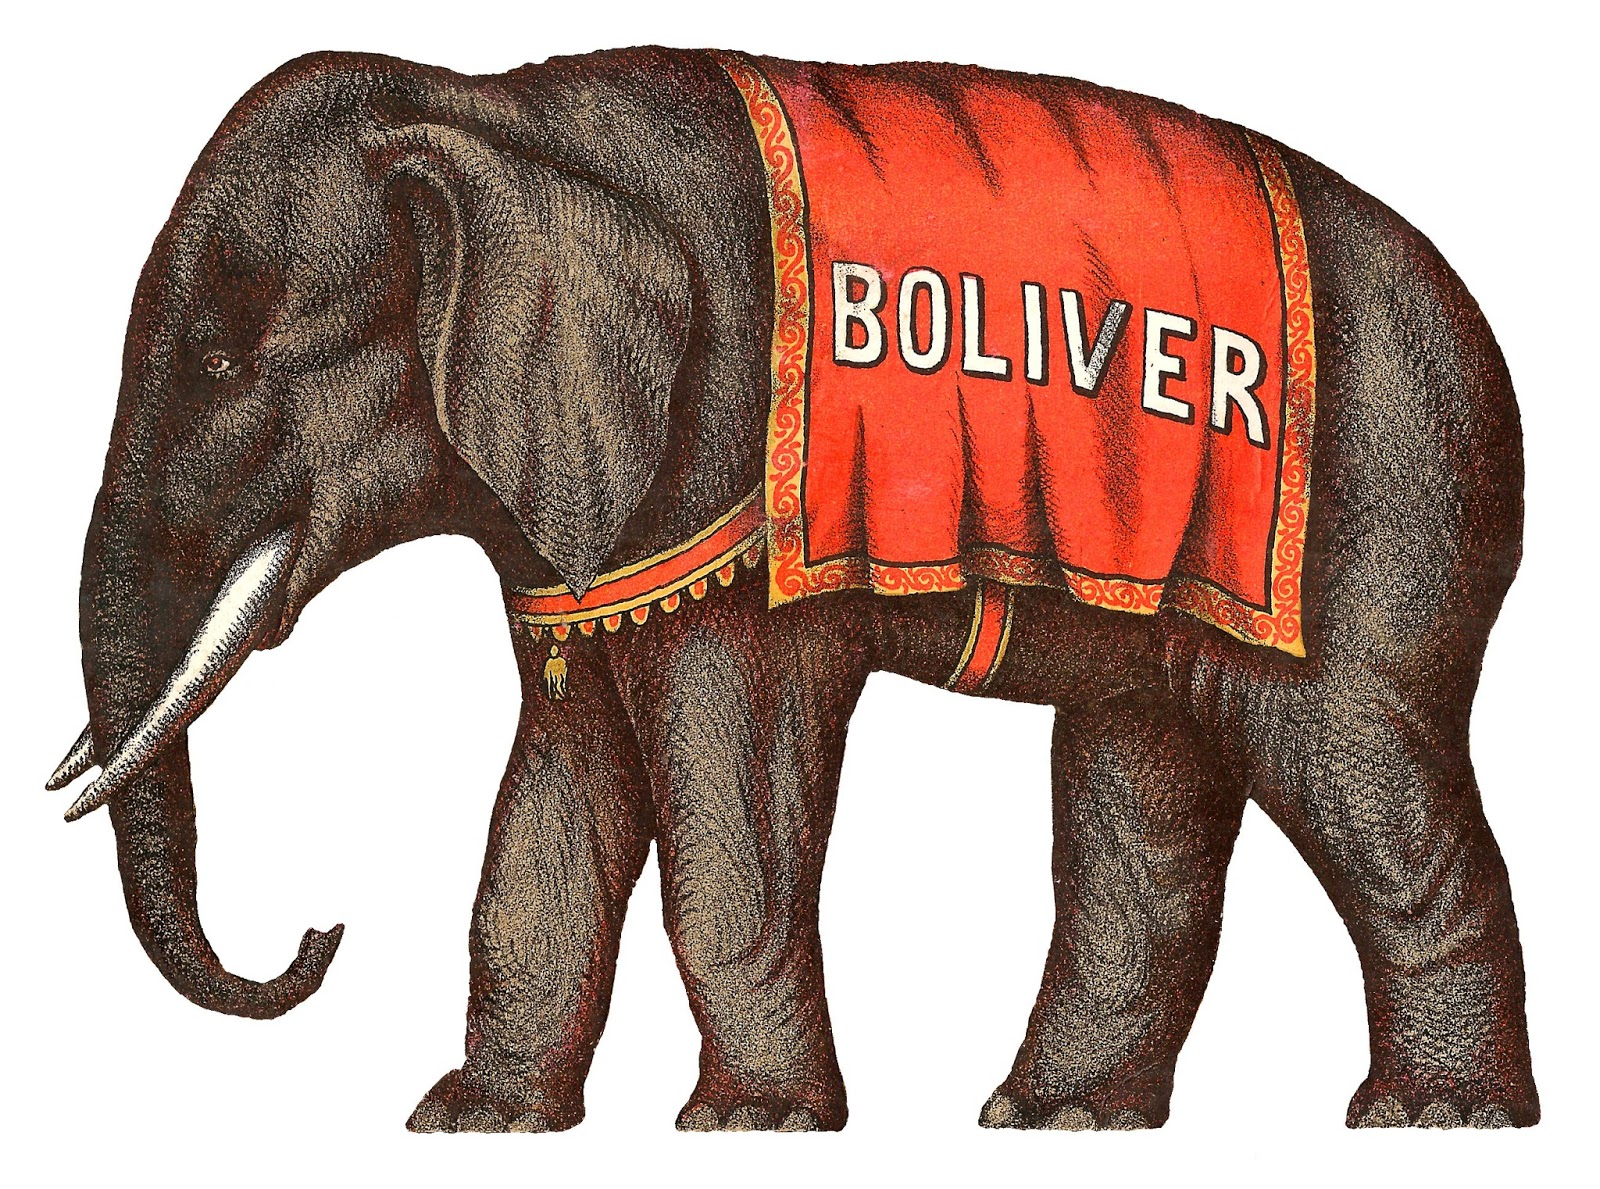 Asian Elephant clipart circus elephant Antique Camel Antique Elephant art